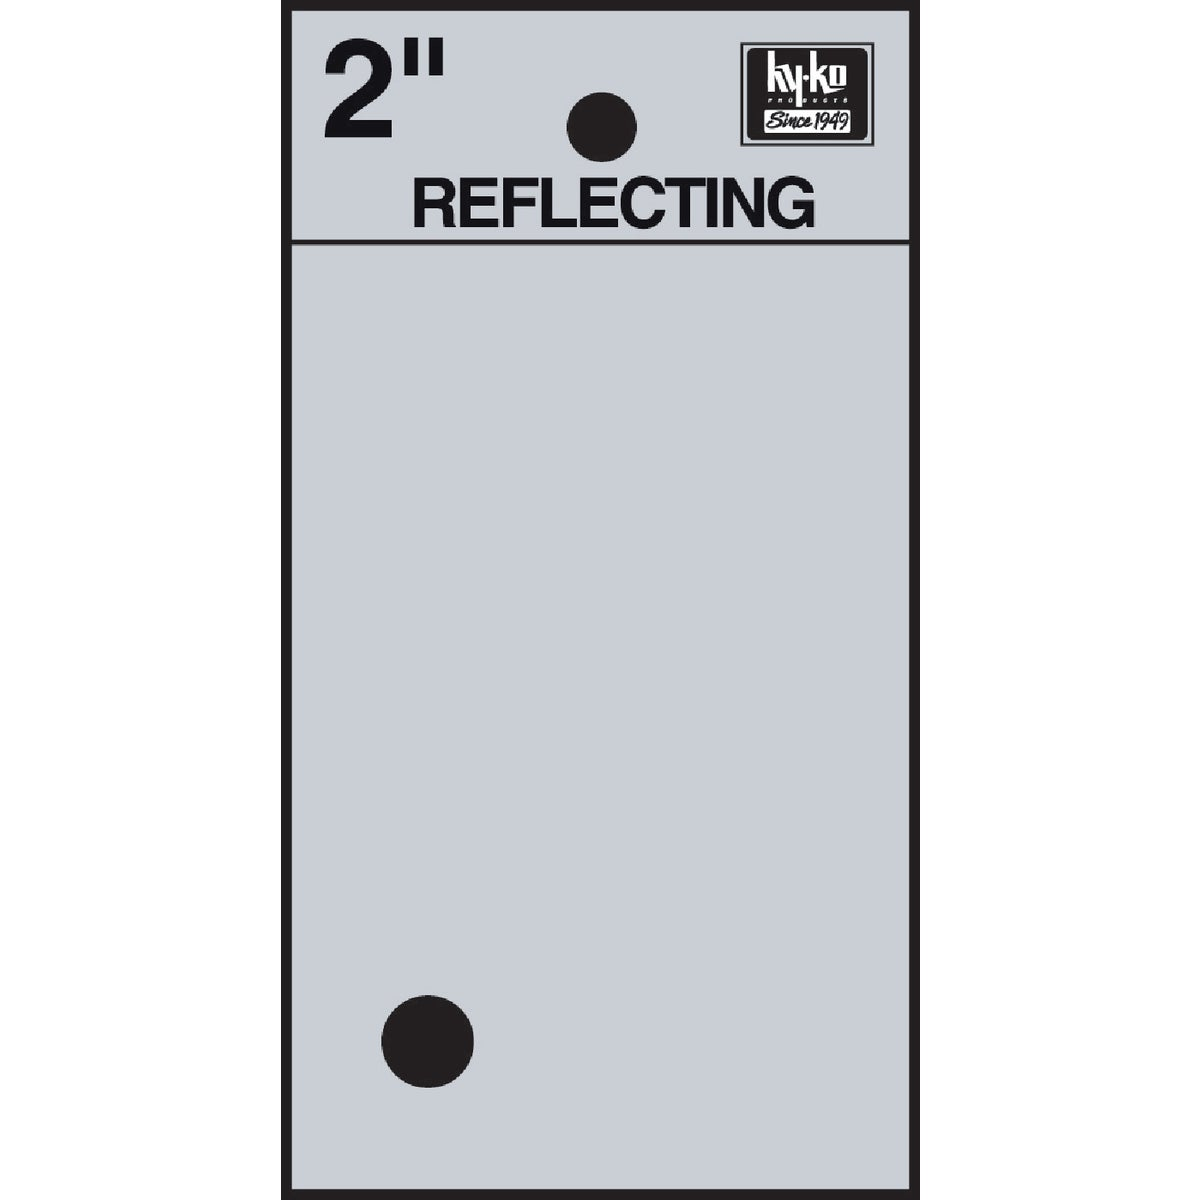 "2"" REFLECT PERIOD - RV-25/. by Hy Ko Prods Co"